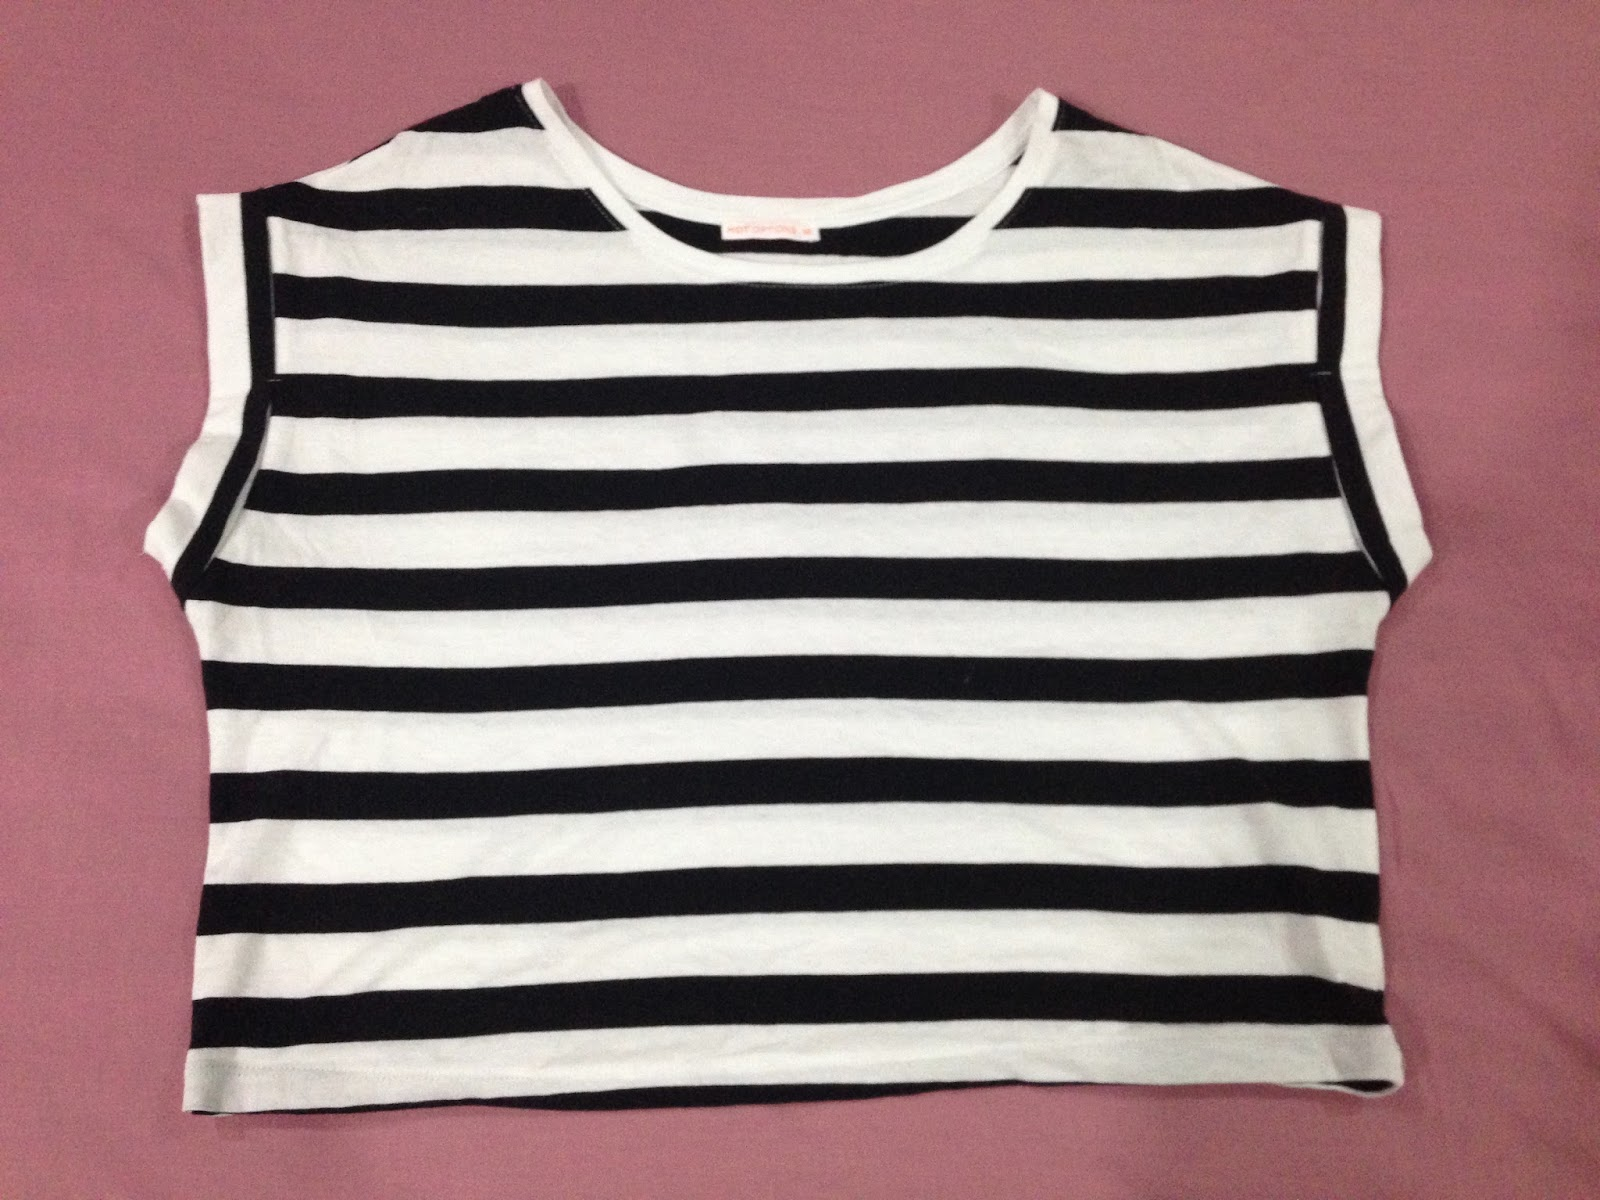 Target 'Hot Options' Monochrome Striped Cropped Shirt